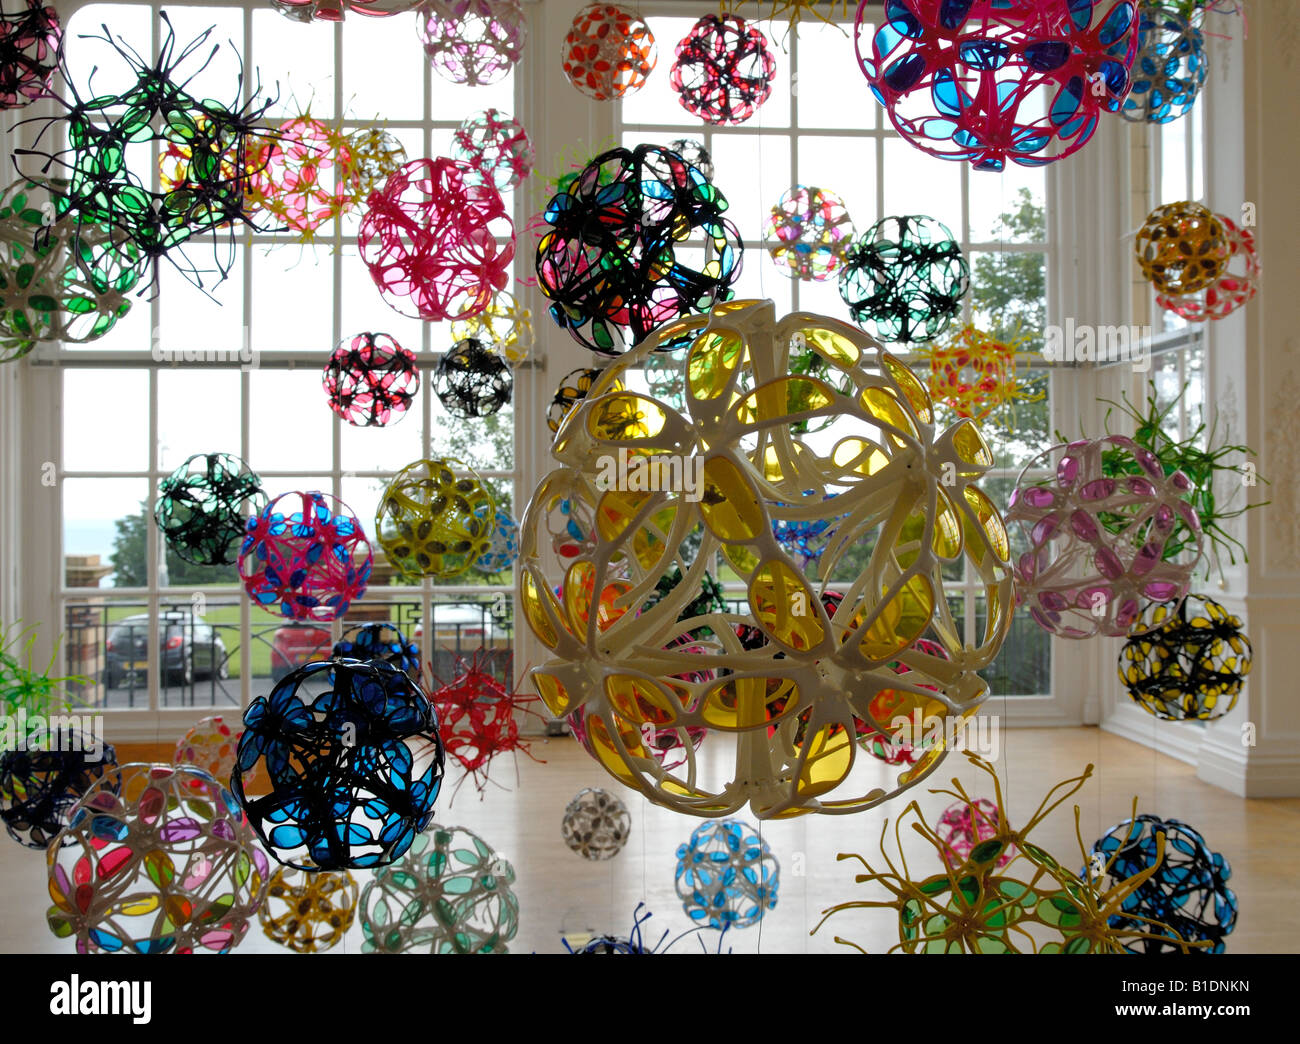 David Batchelor 'Disco Mecanique' sculpture at the Metropole Gallery, Folkestone - Stock Image